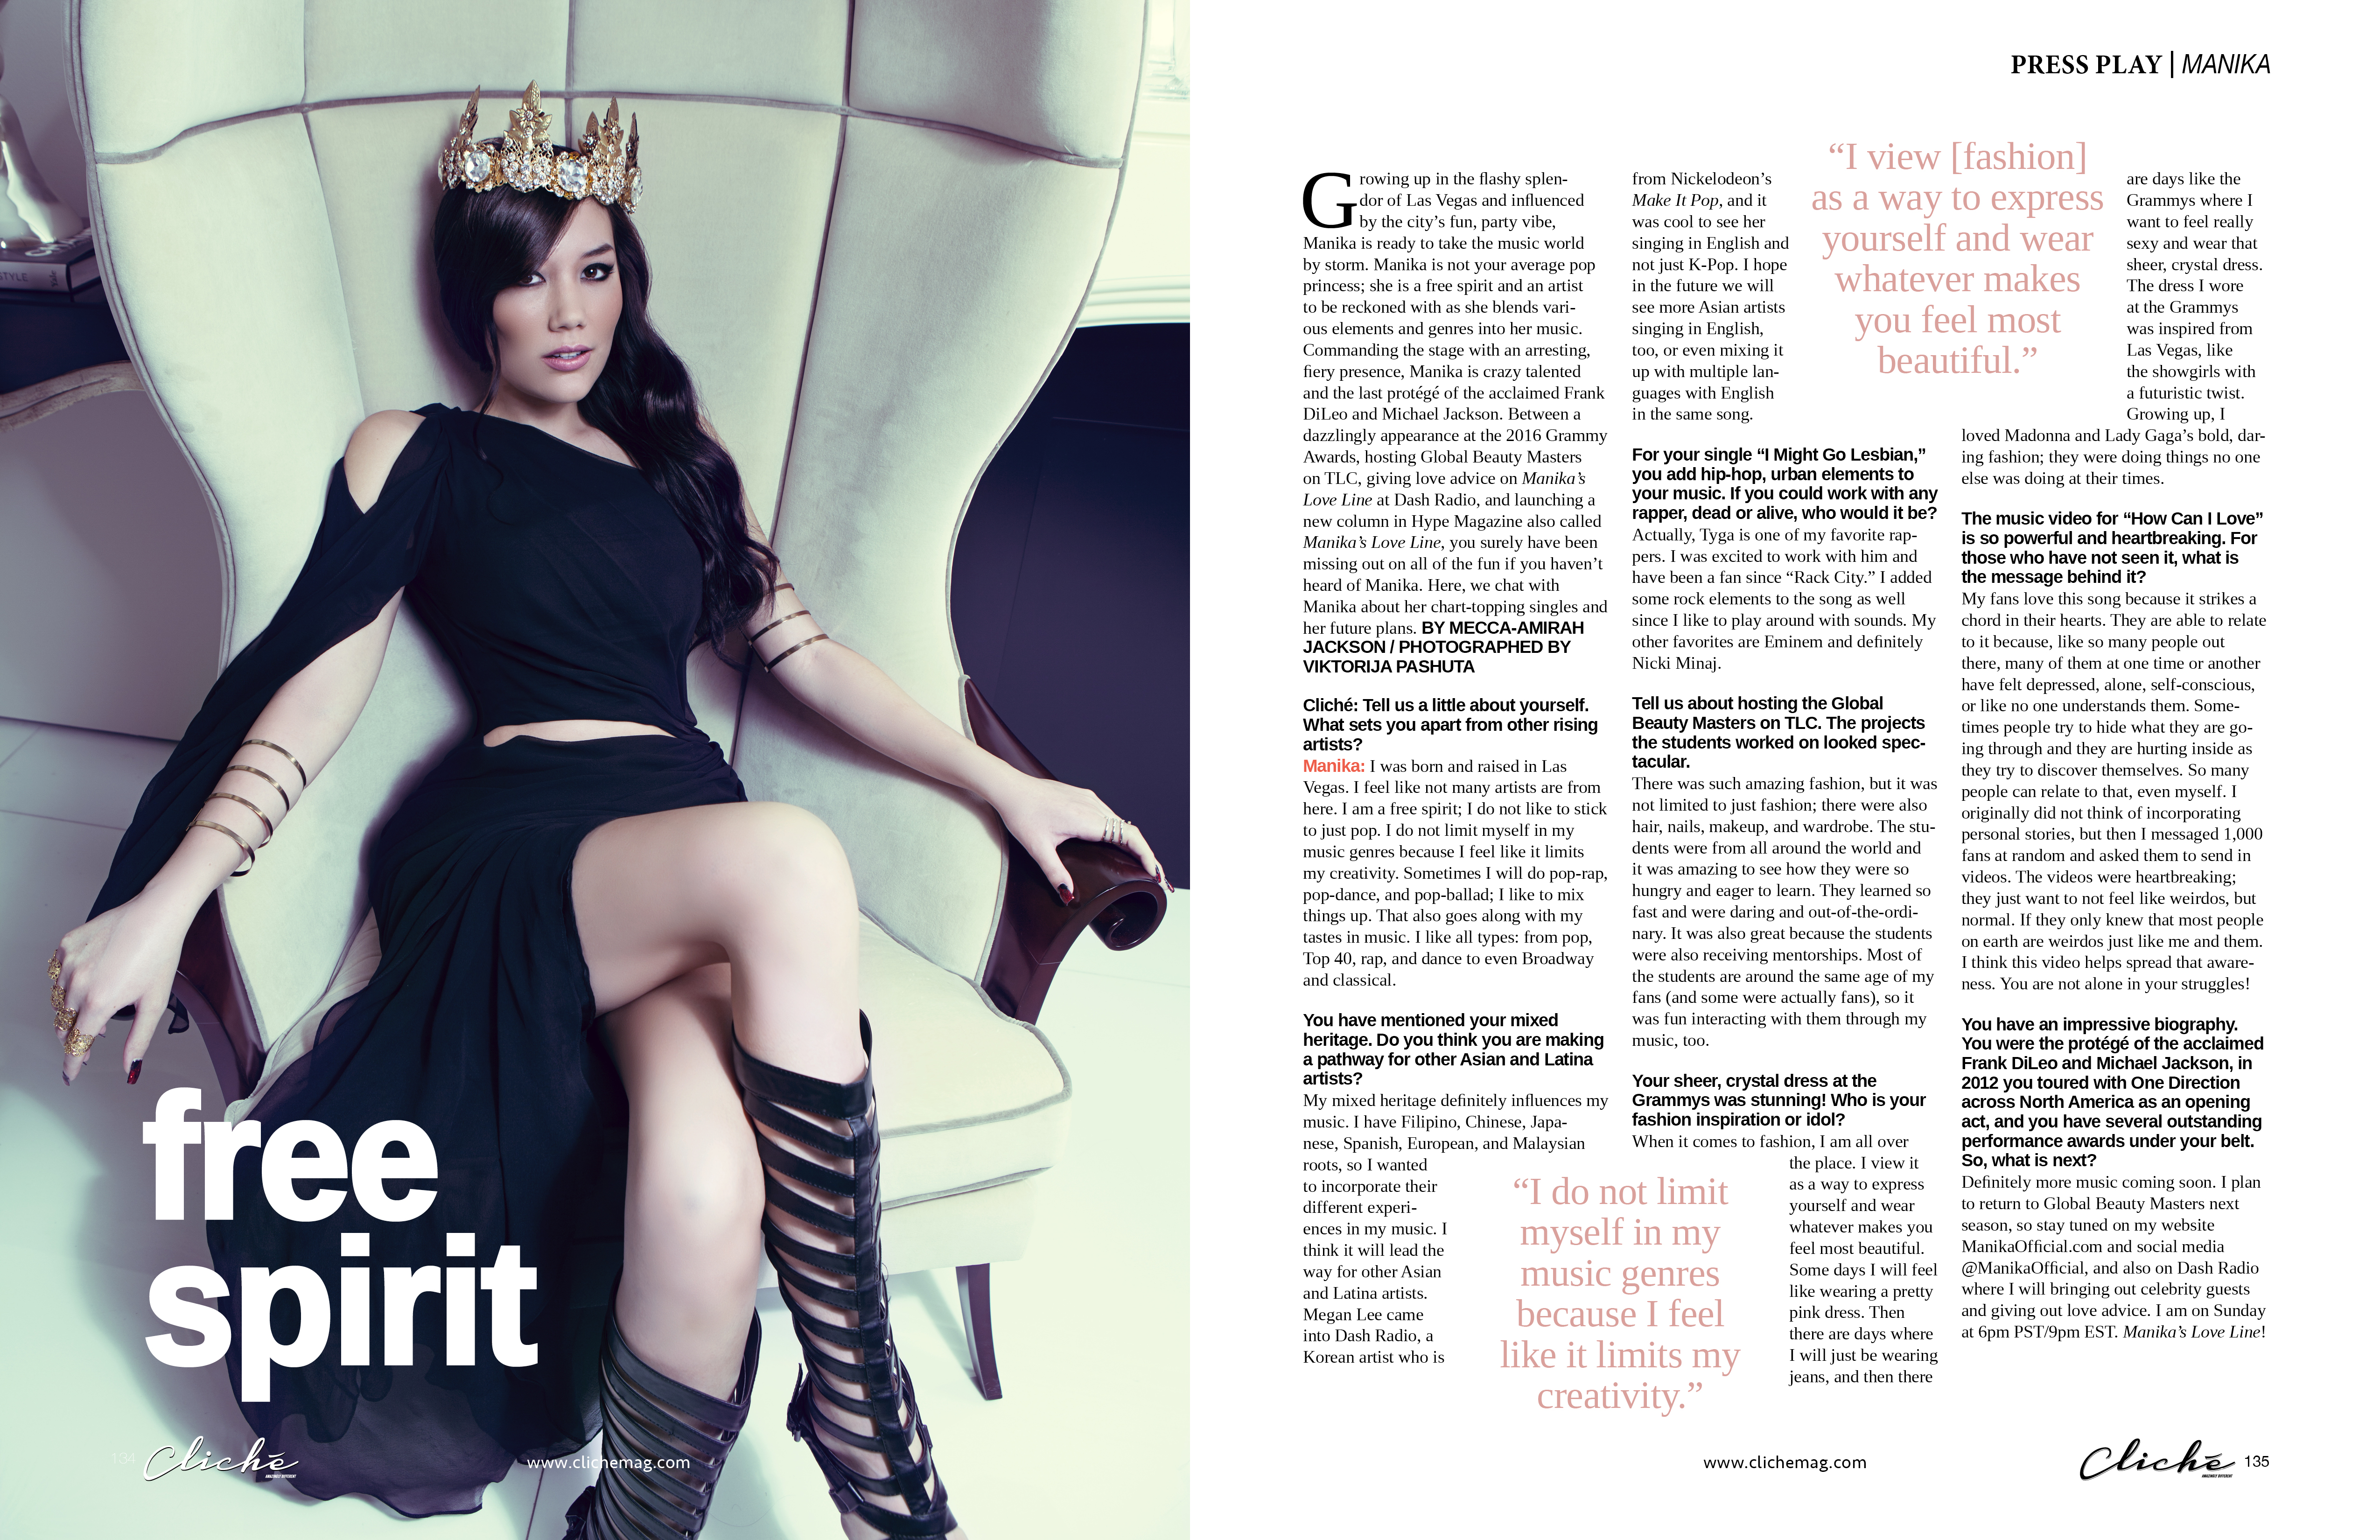 Manika free spirit cliche magazine press play fashion global beauty masters